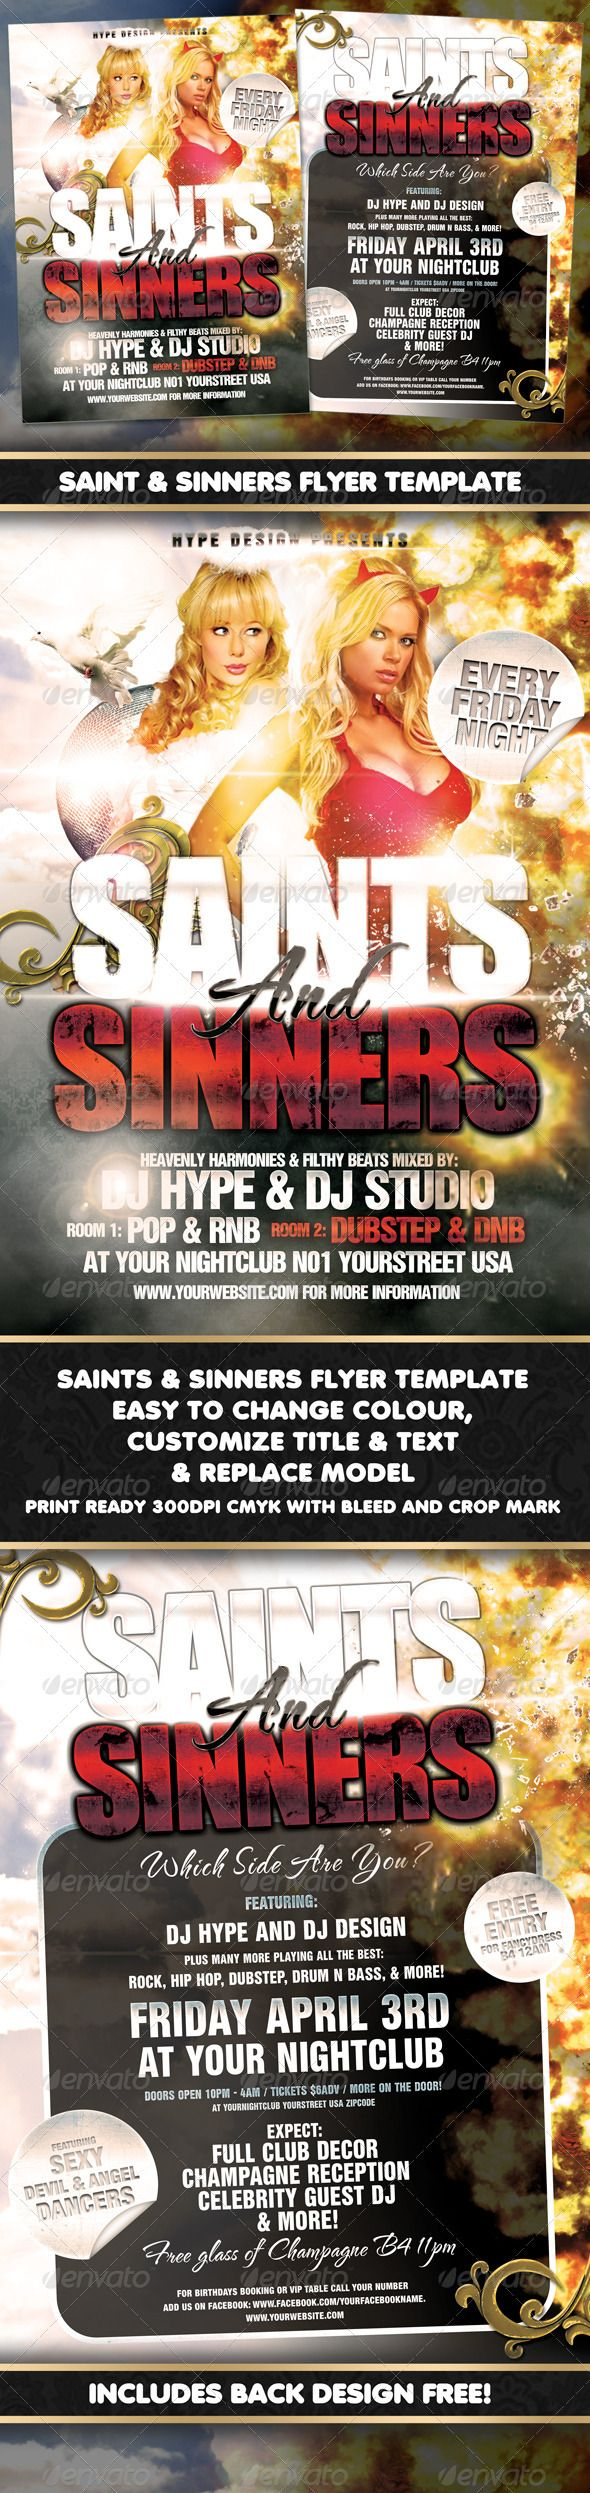 Saints & Sinners Flyer Template  #GraphicRiver         A3 flyer/poster for nightclubs/bars or events.  	 Included Back design FREE !  	 Easy to edit layers, text & the title.  	 Easy to replace model/models  	 - Print ready 300DPI CMYK with bleed and crop mark - A3 (297 × 420 with 3mm bleed) - Main Title is easily changeable. - All text easily changeable  	 Fonts used:  	 The title font: Bebas  	 Other fonts: helbalnseratdb / Helvetica neue  	 Model is Not included  	 For CUSTOM FLYER or…